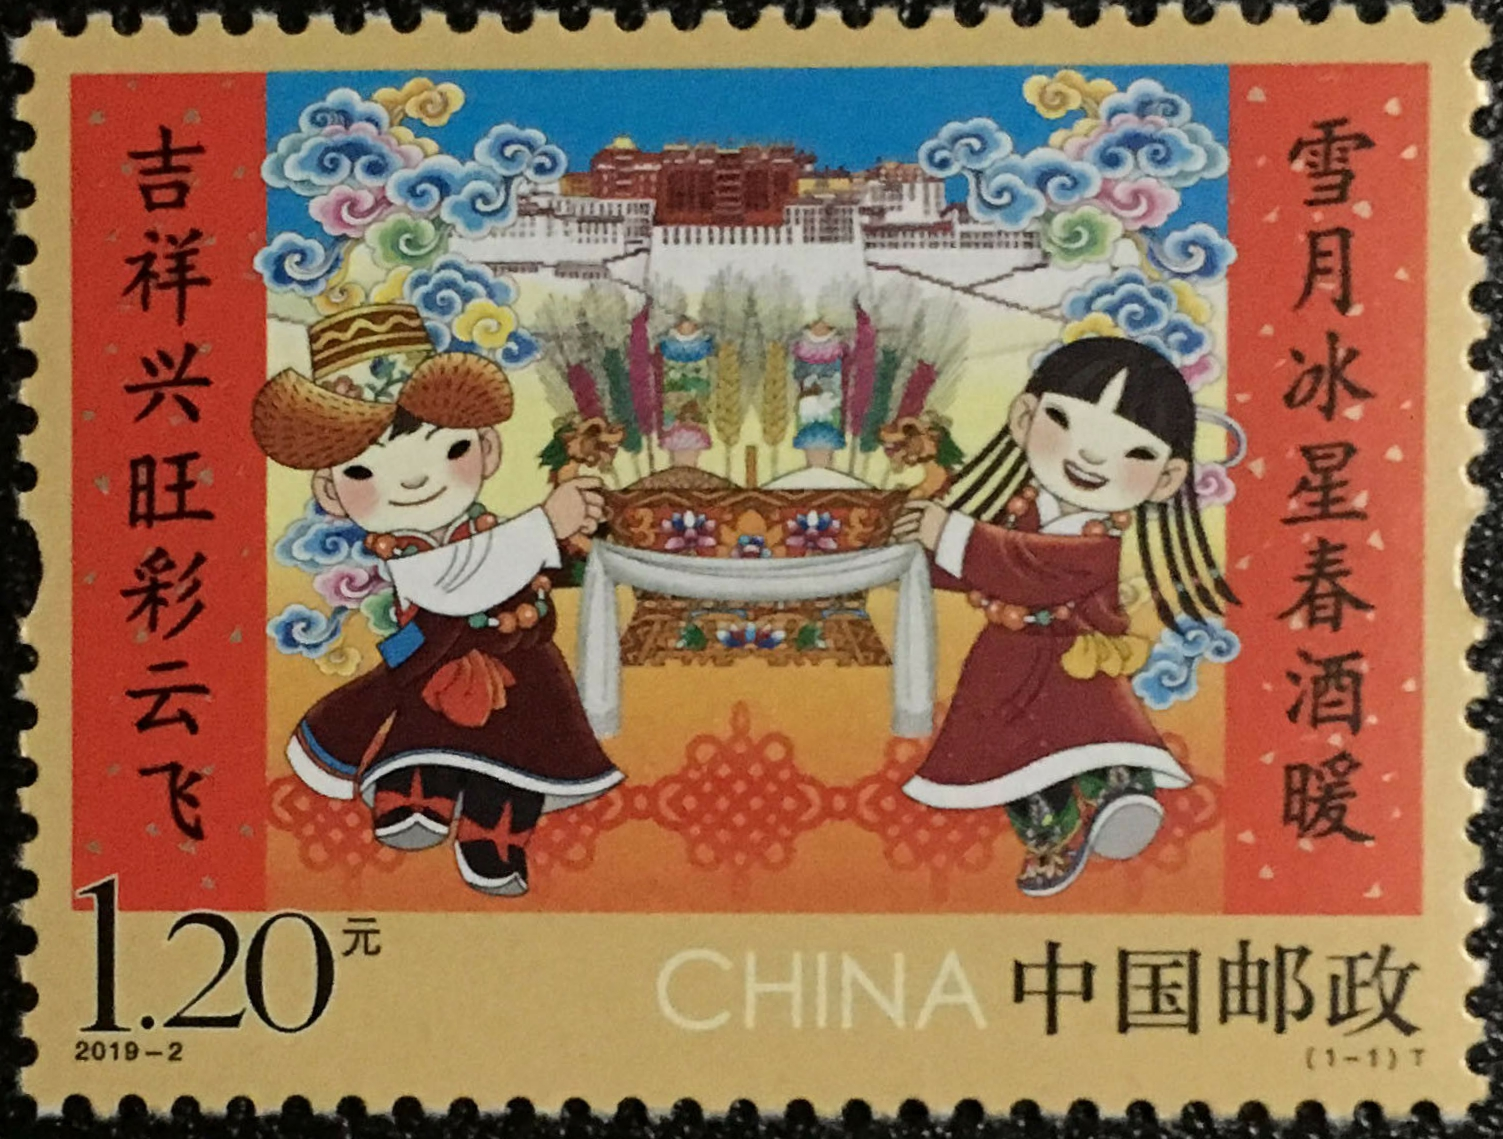 China, PRC - Chinese New Year Greetings Stamp (January 10, 2019)